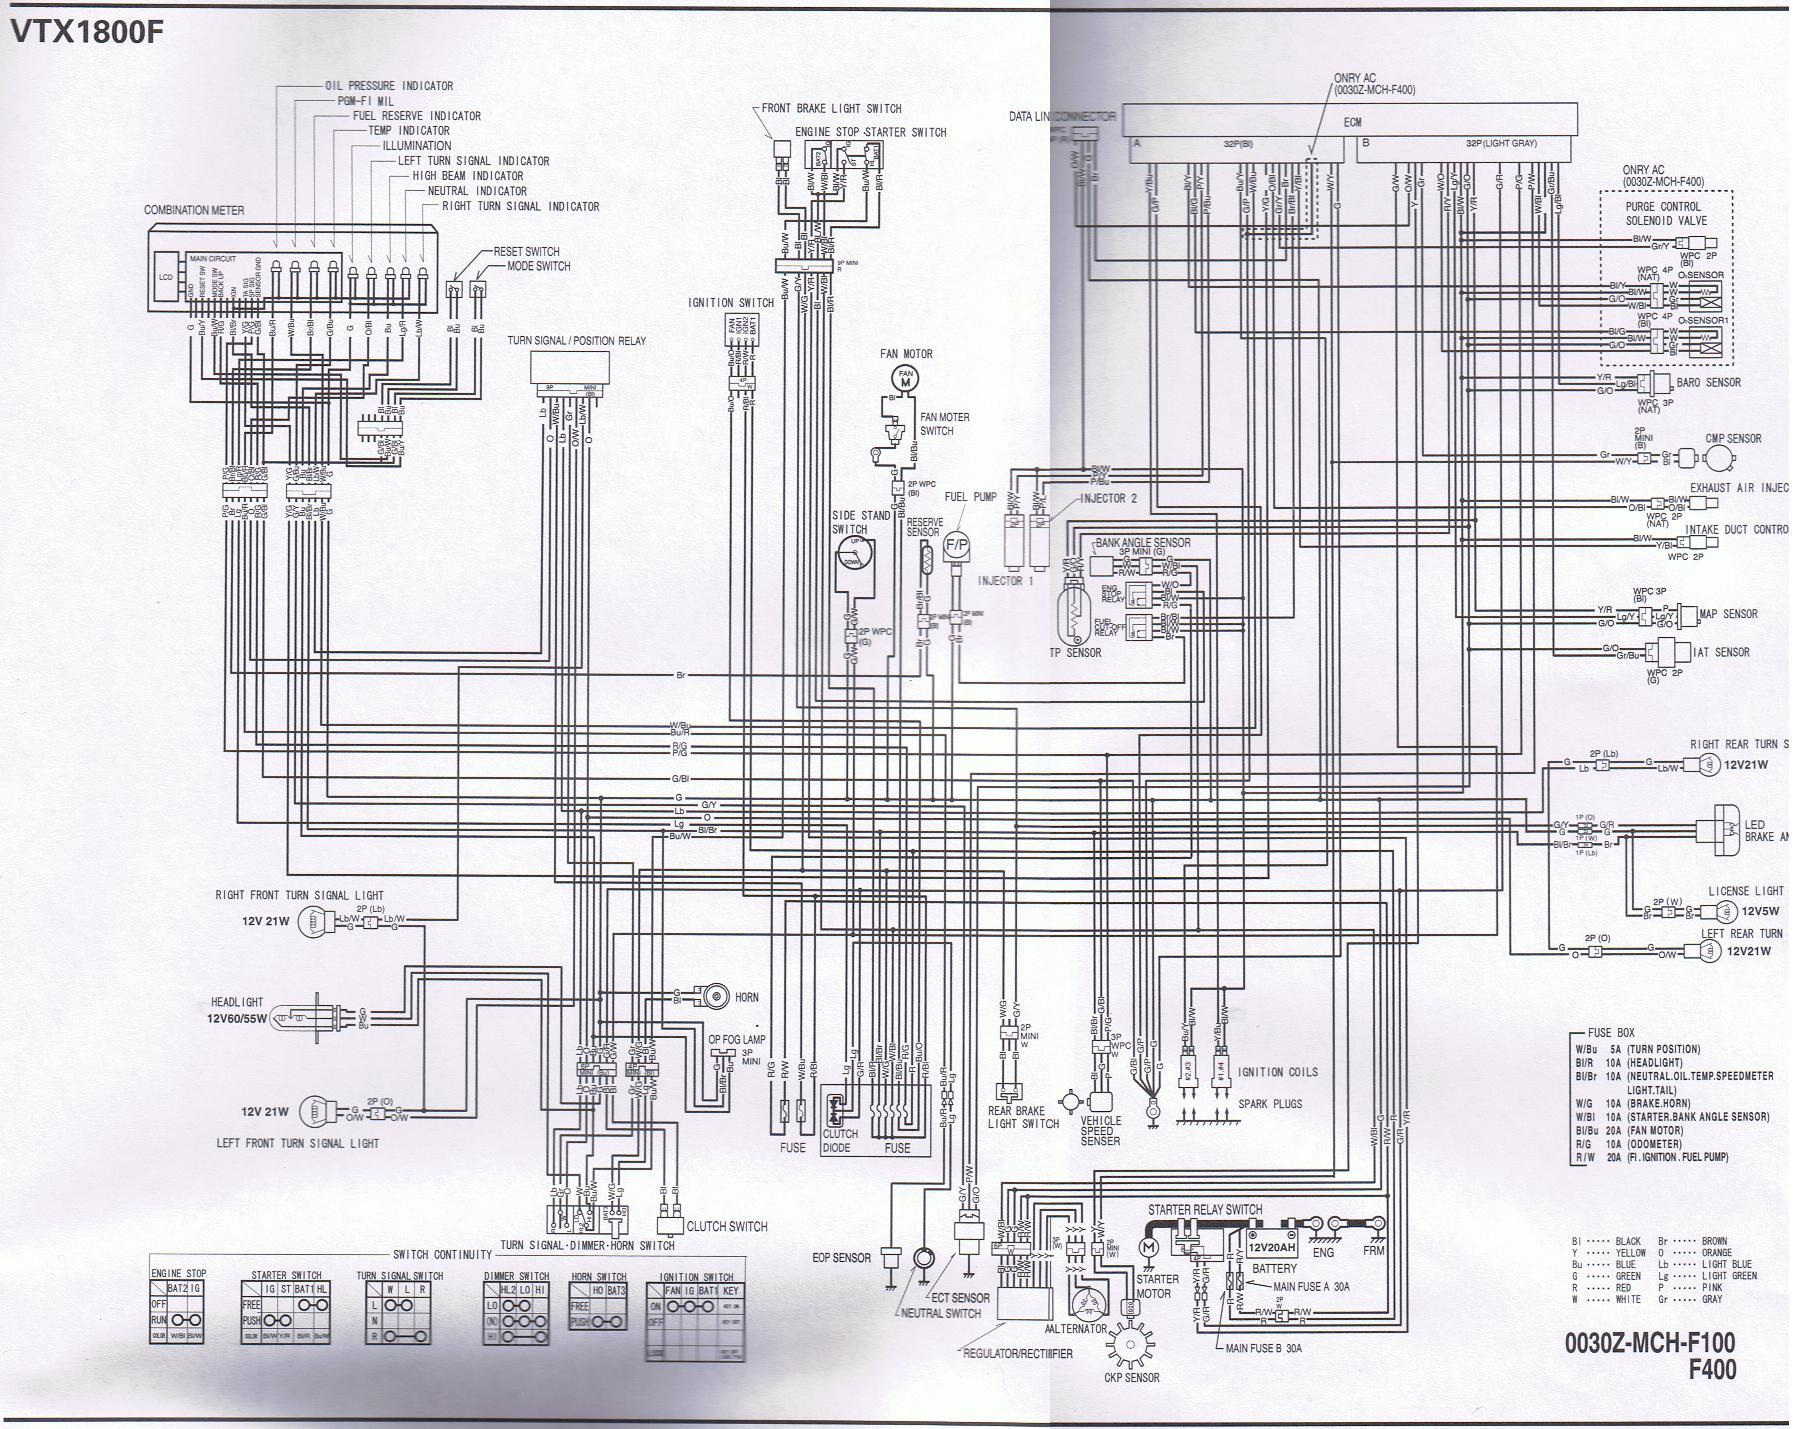 05+_VTX1800_F_schematic motorcycle wire schematics bareass choppers motorcycle tech pages  at gsmportal.co